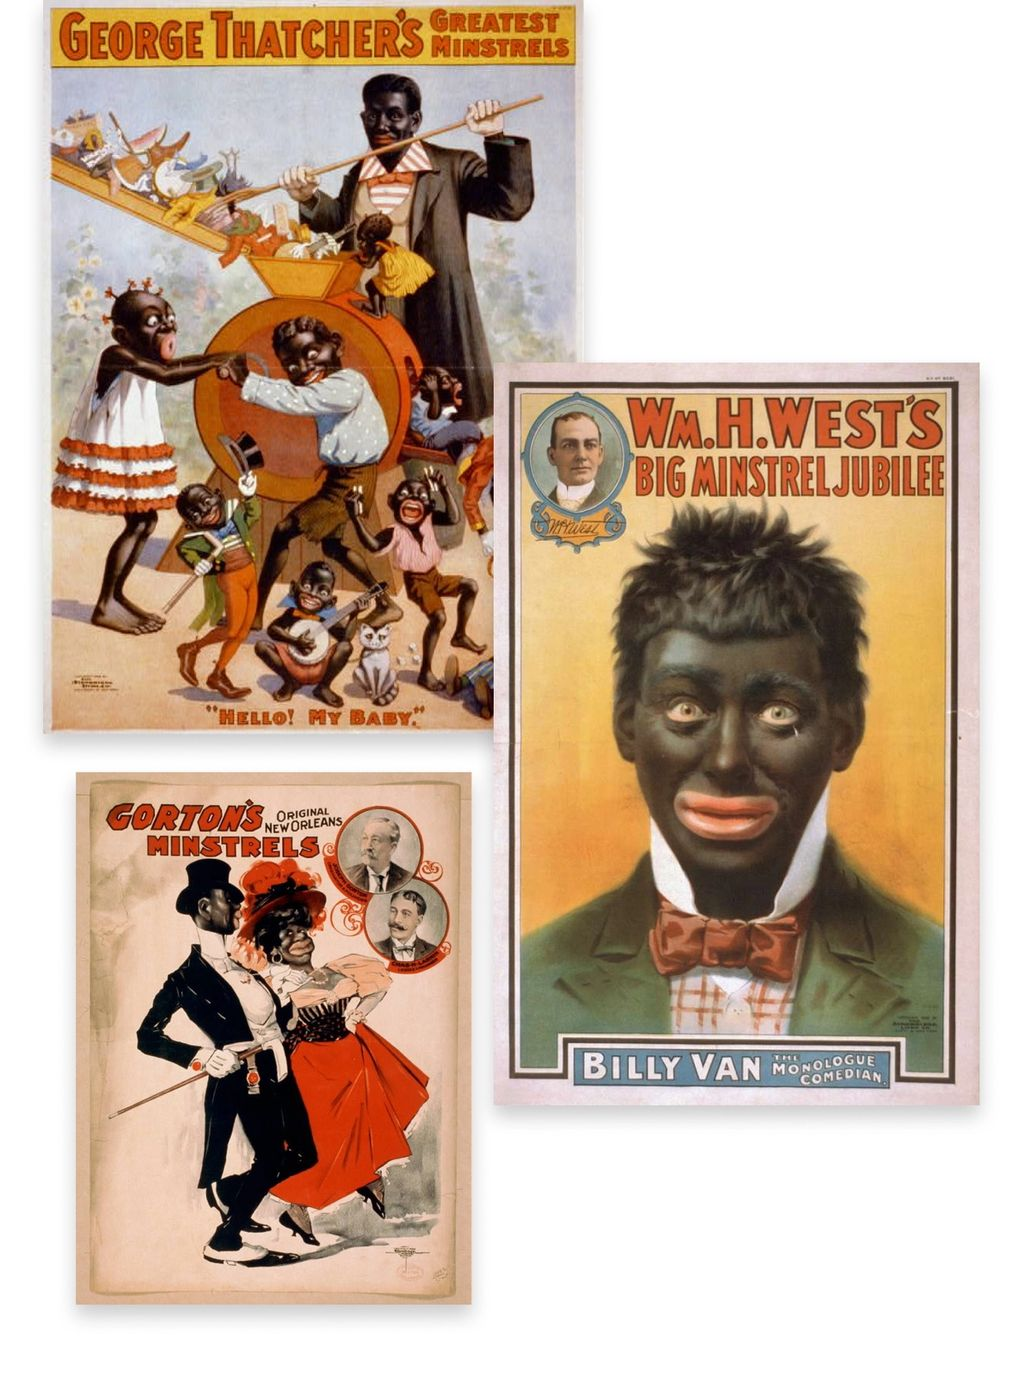 Historical artwork and imagery of minstrel shows and blackface